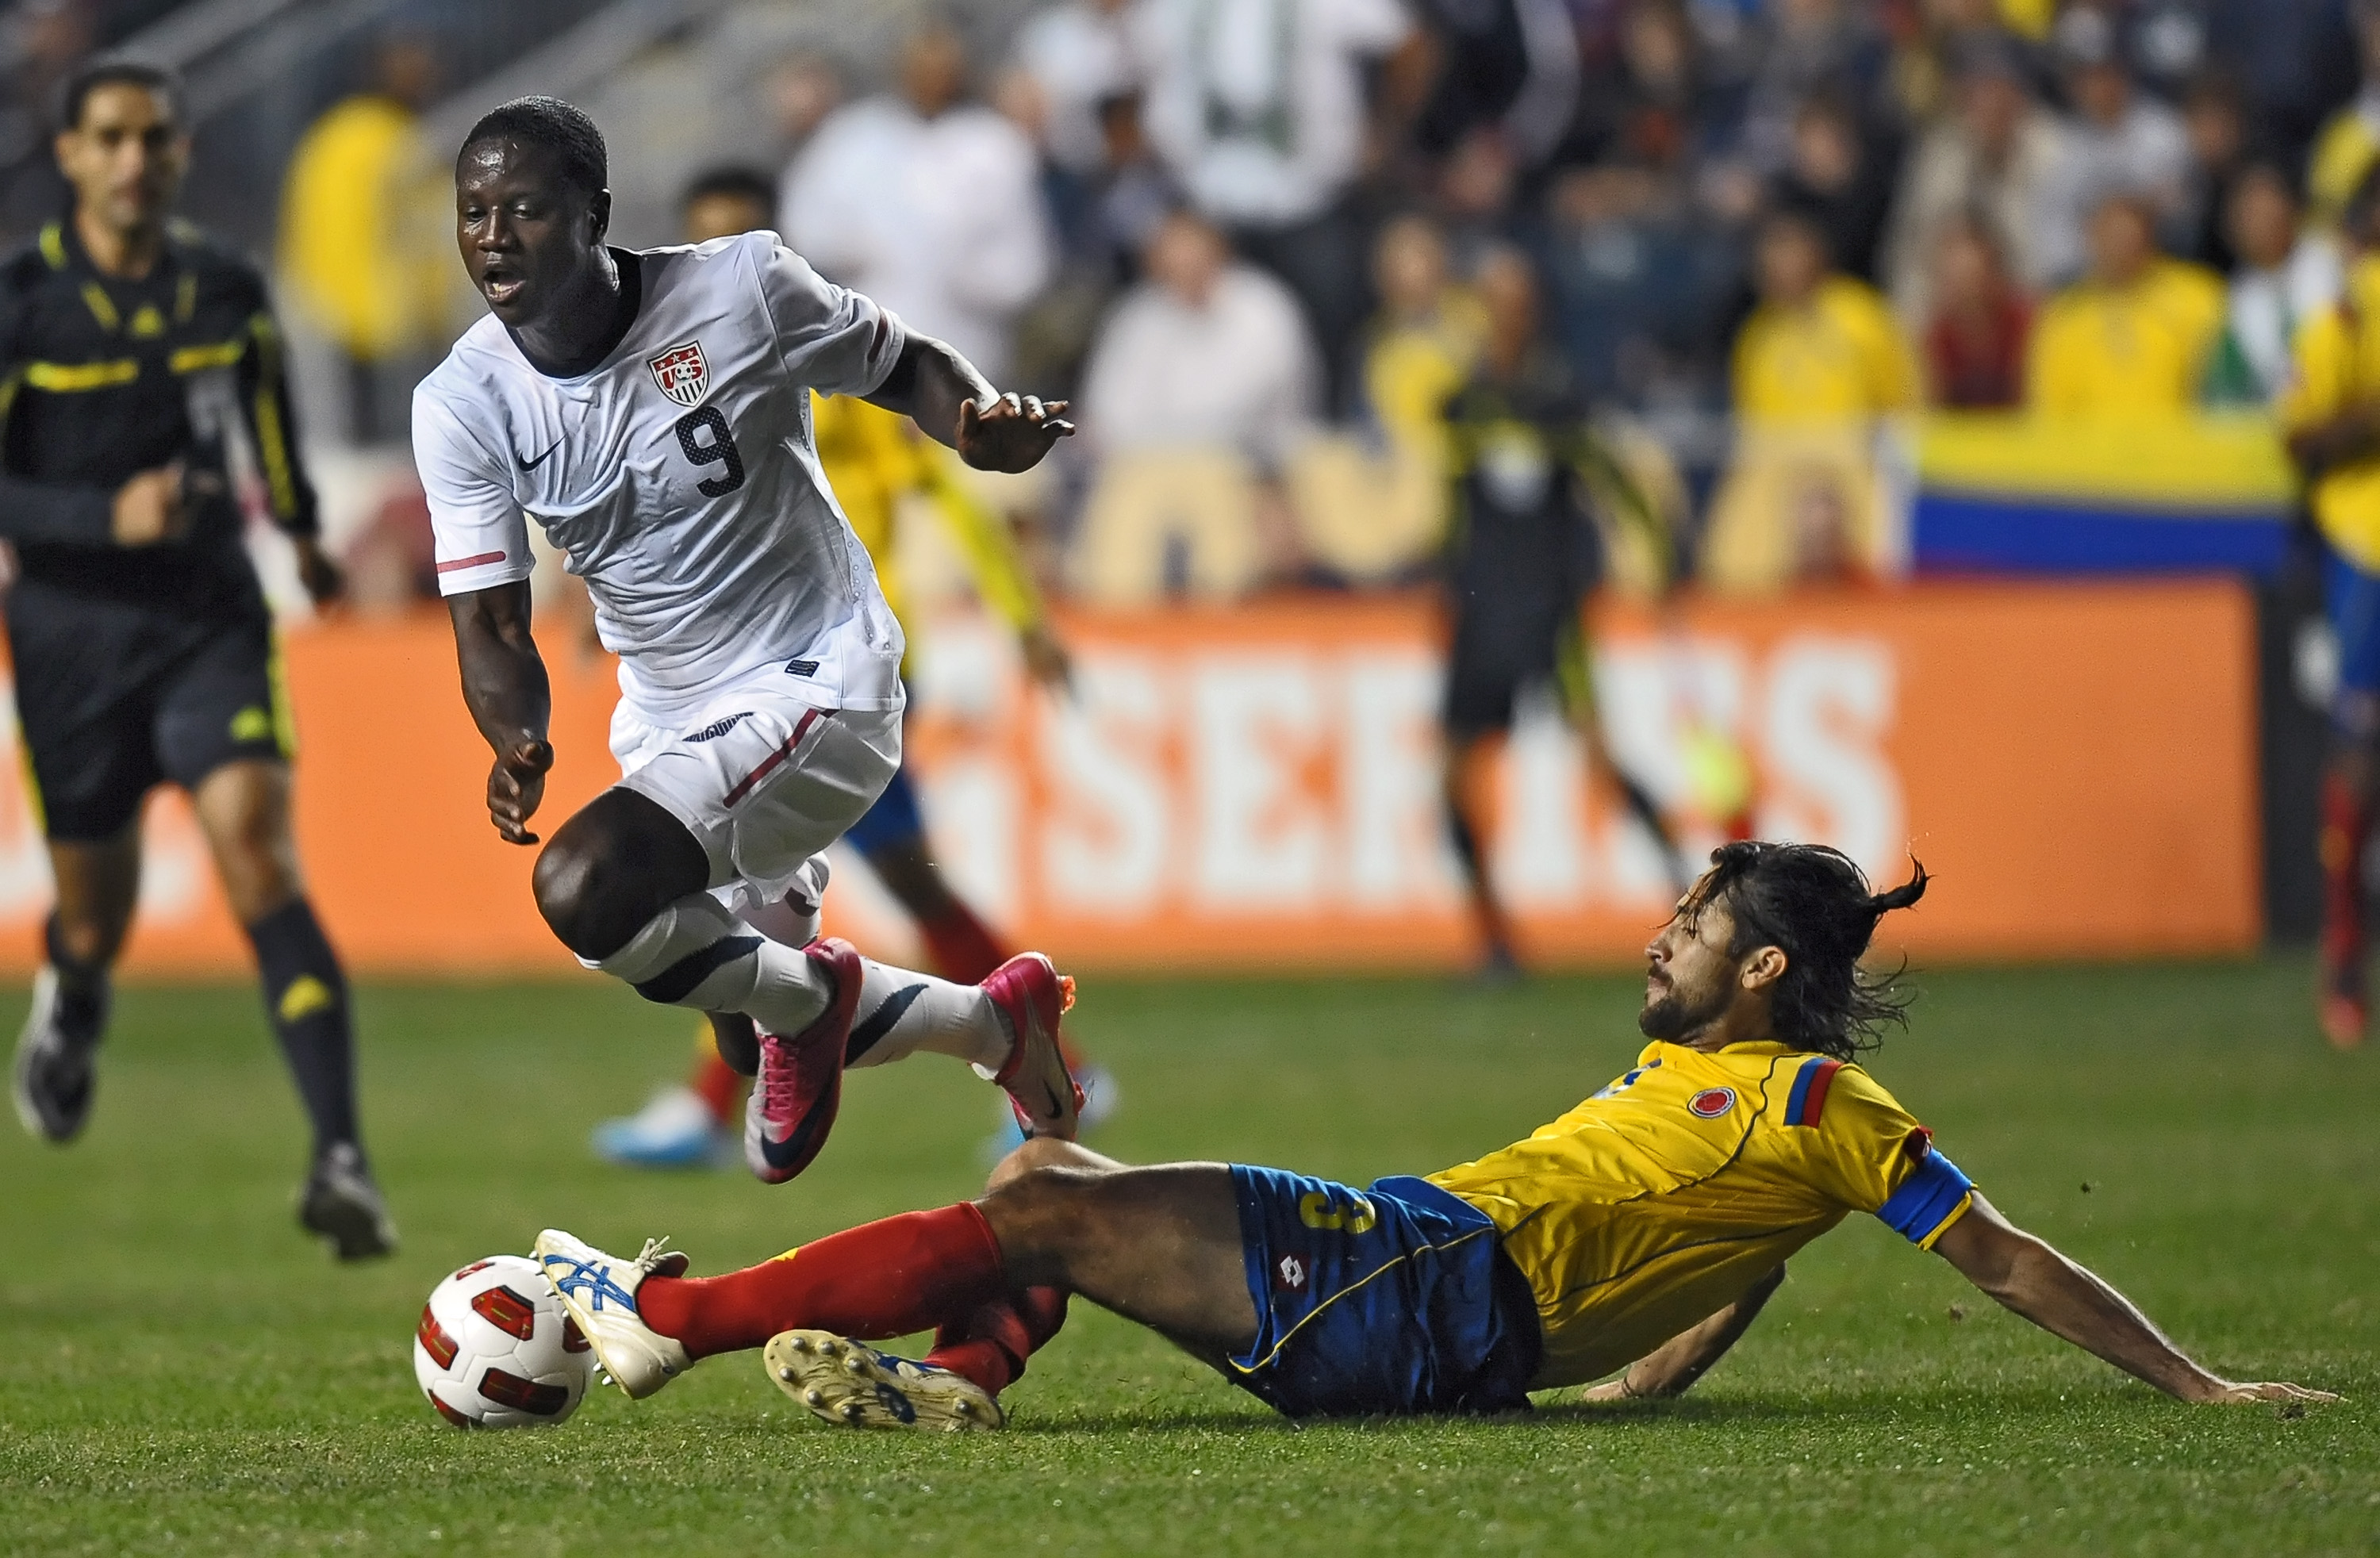 CHESTER, PA - OCTOBER 12: Eddie Johnson #9 of the United States gets tripped up by a sliding Mario Yepes #3 of Colombia at PPL Park on October 12, 2010 in Chester, Pennsylvania. The game ended in a 0-0 tie. (Photo by Drew Hallowell/Getty Images)